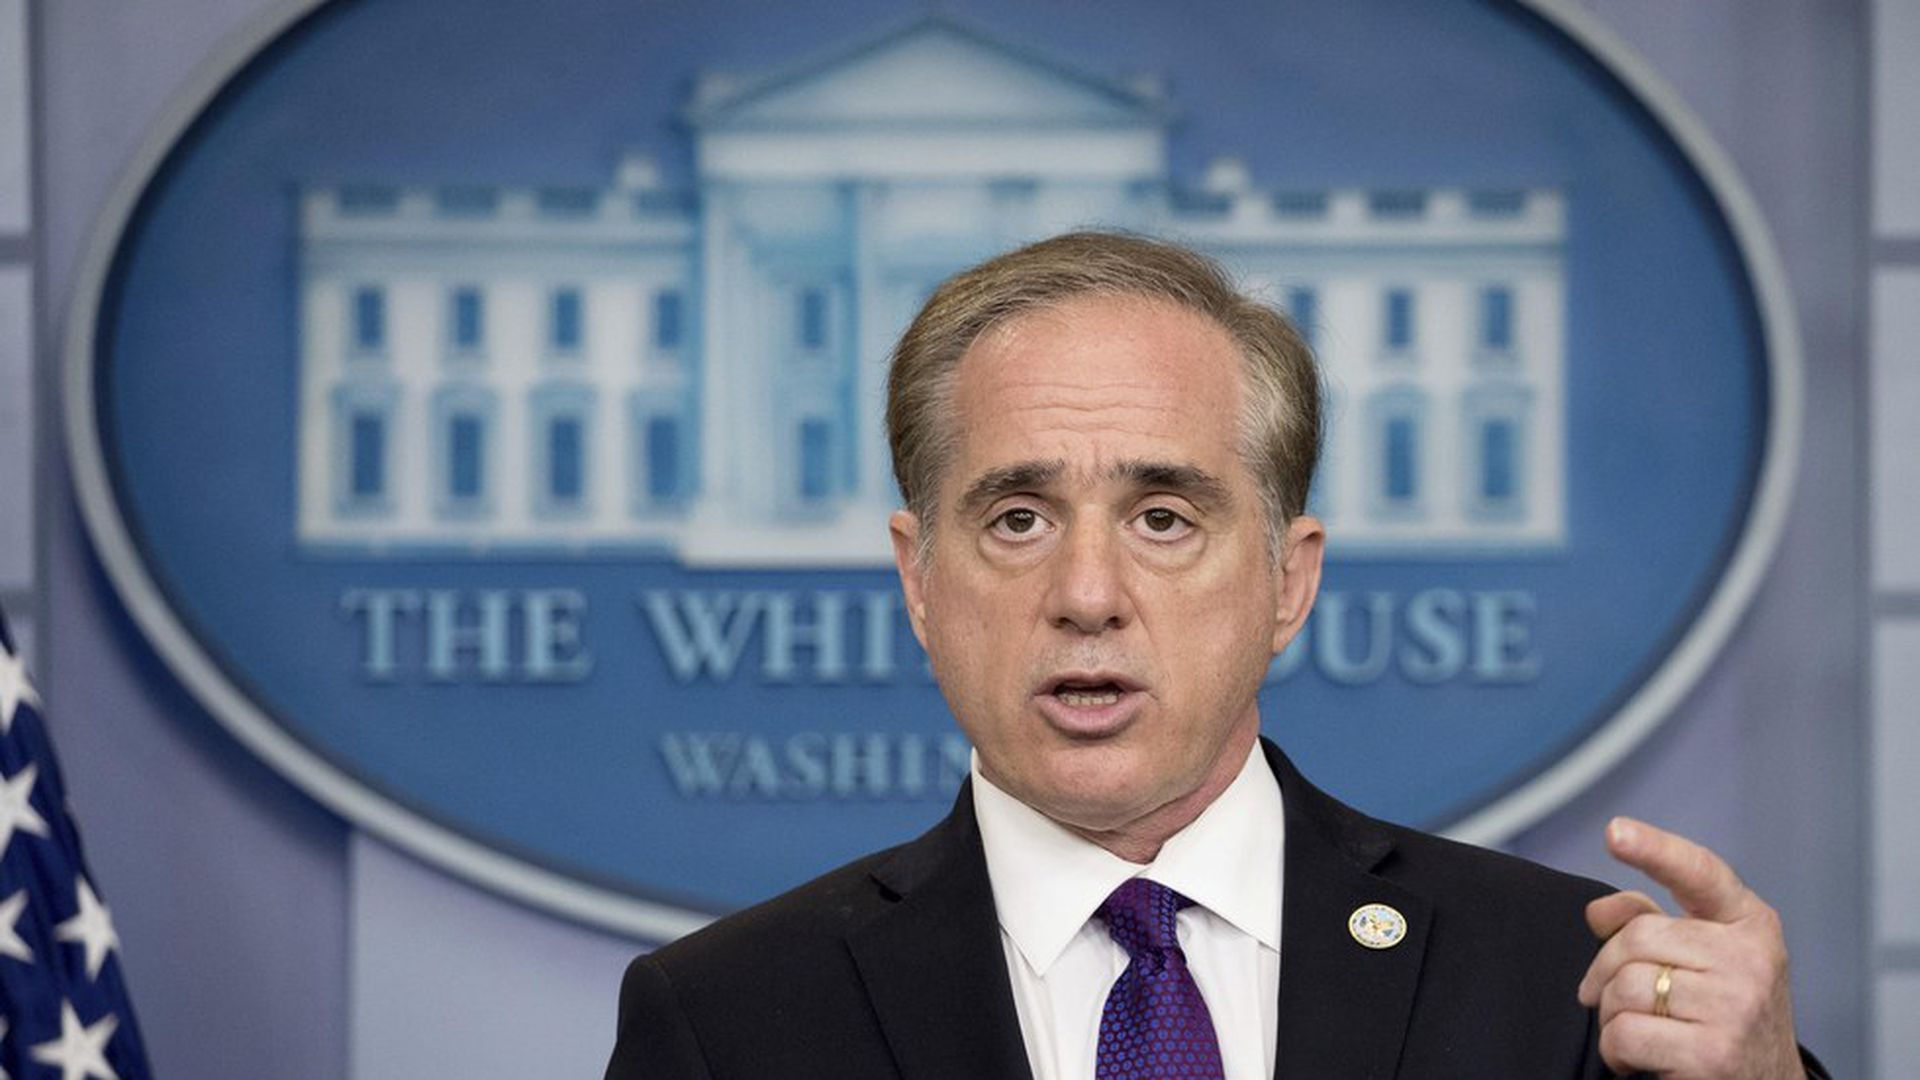 The VA has a surprise $1B budget gap